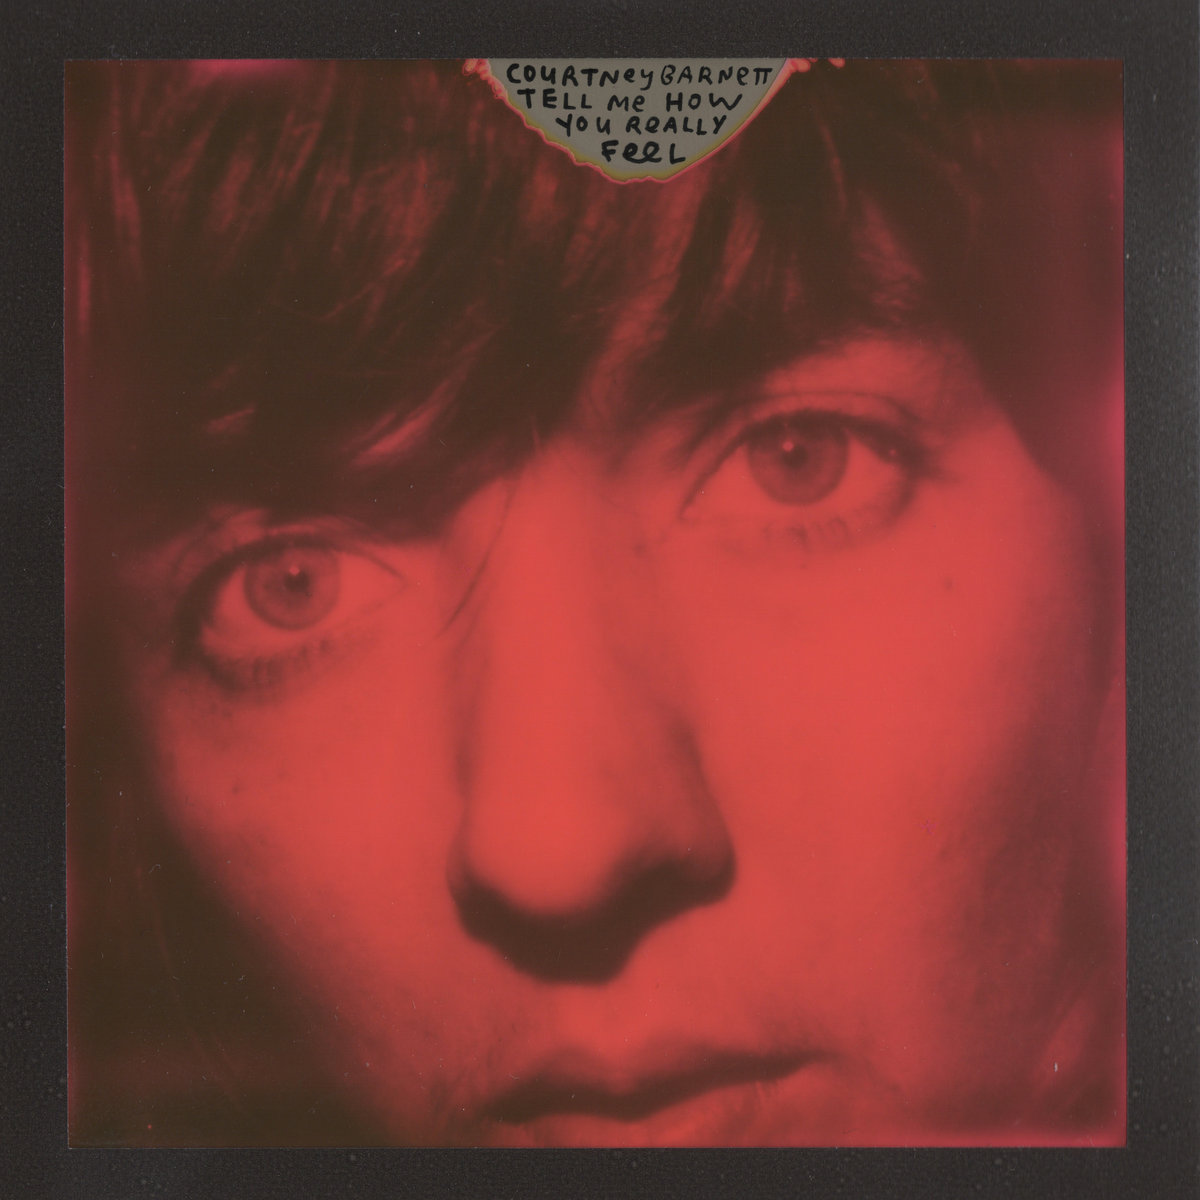 Image result for tell me how you really feel courtney barnett album cover